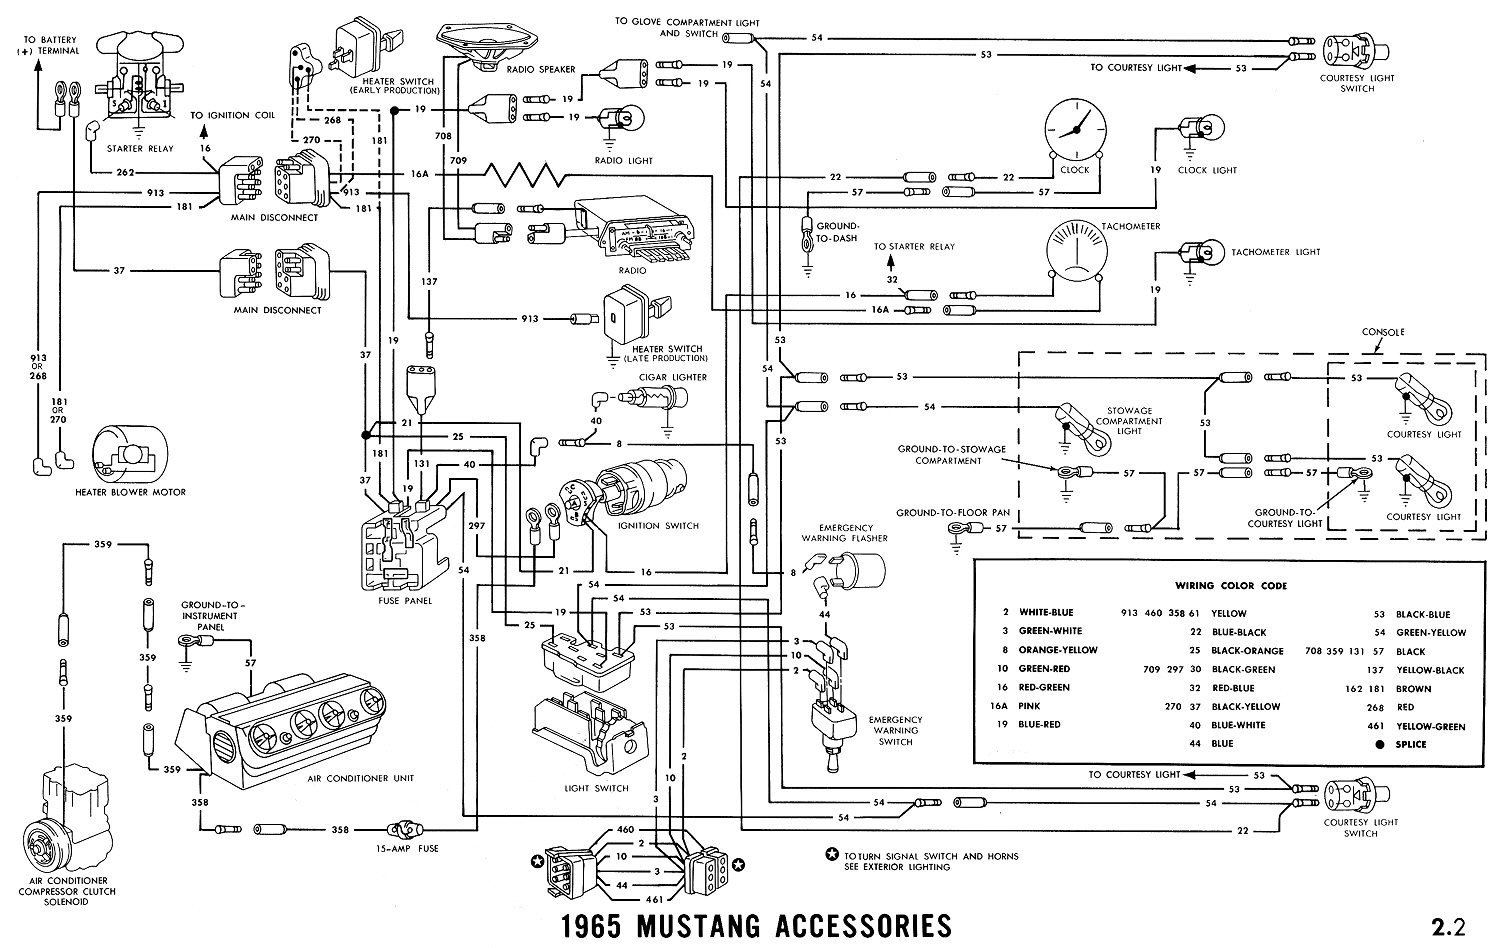 1965i 1965 mustang wiring diagrams average joe restoration 67 mustang dash wiring diagram at virtualis.co